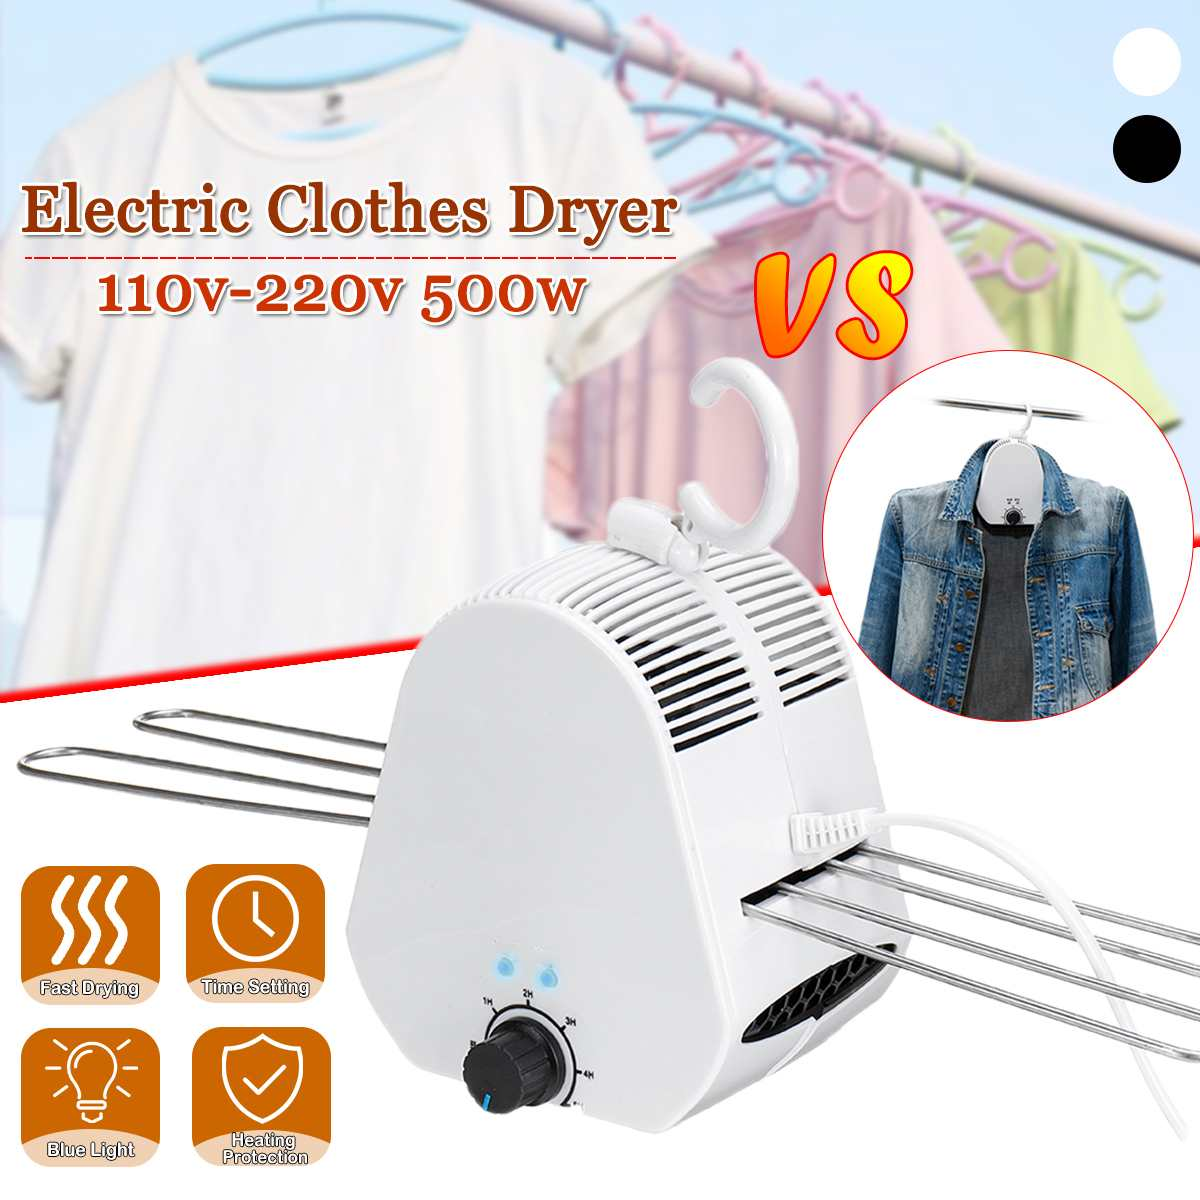 Portable Electric Clothes Drying Rack Smart Clothes Dryer Outdoor Travel Mini Clothing Shoes laundry Foldable Heater Timer